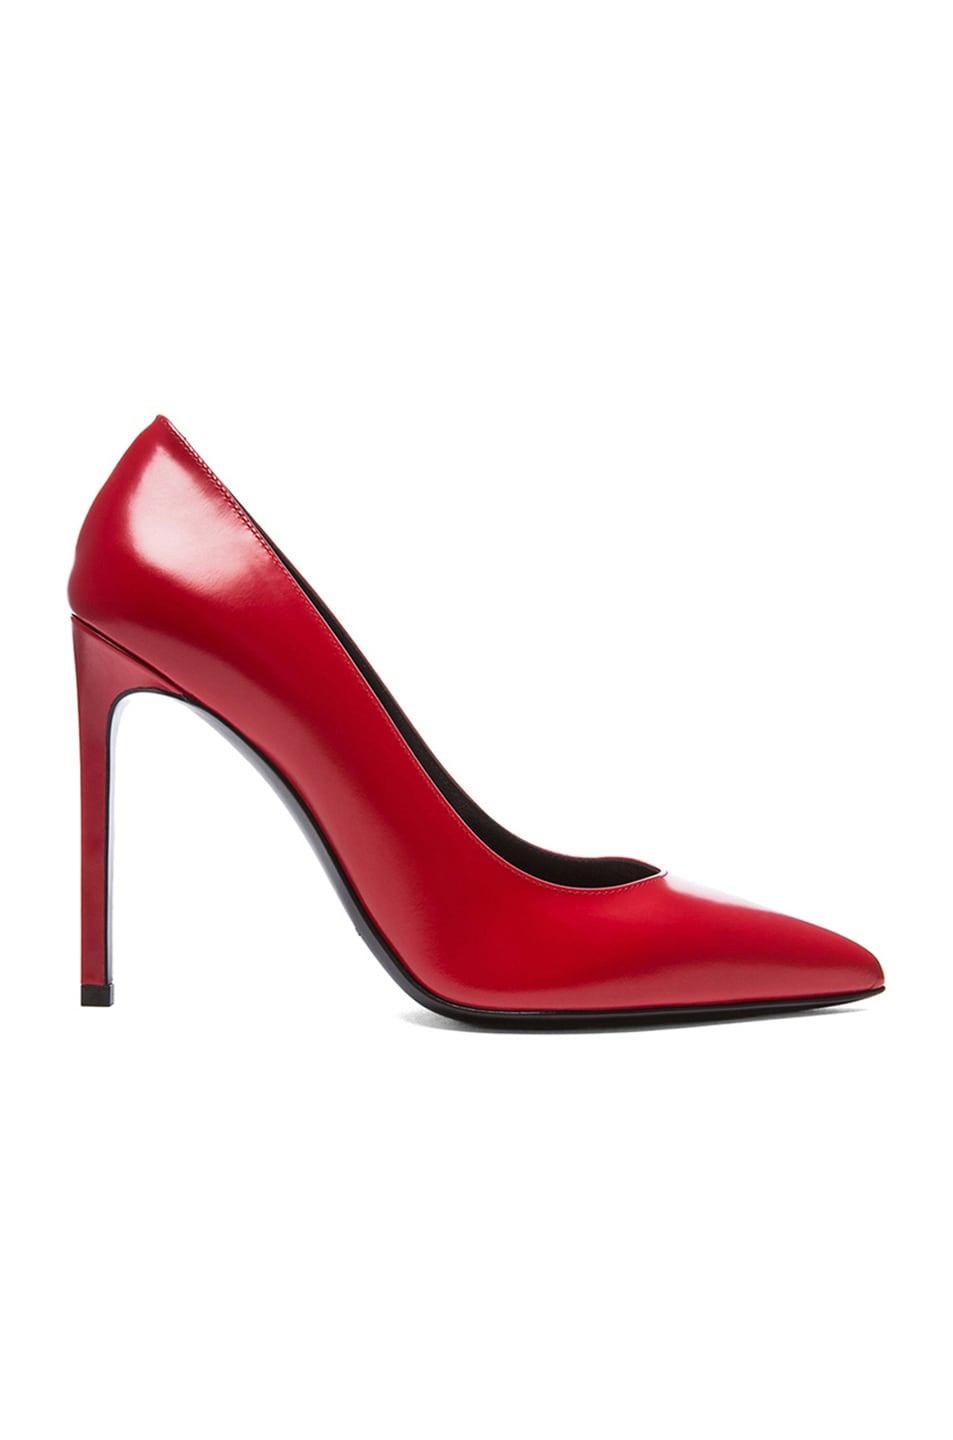 Image 1 of Saint Laurent Paris Calfskin Leather Pumps in Lipstick Red